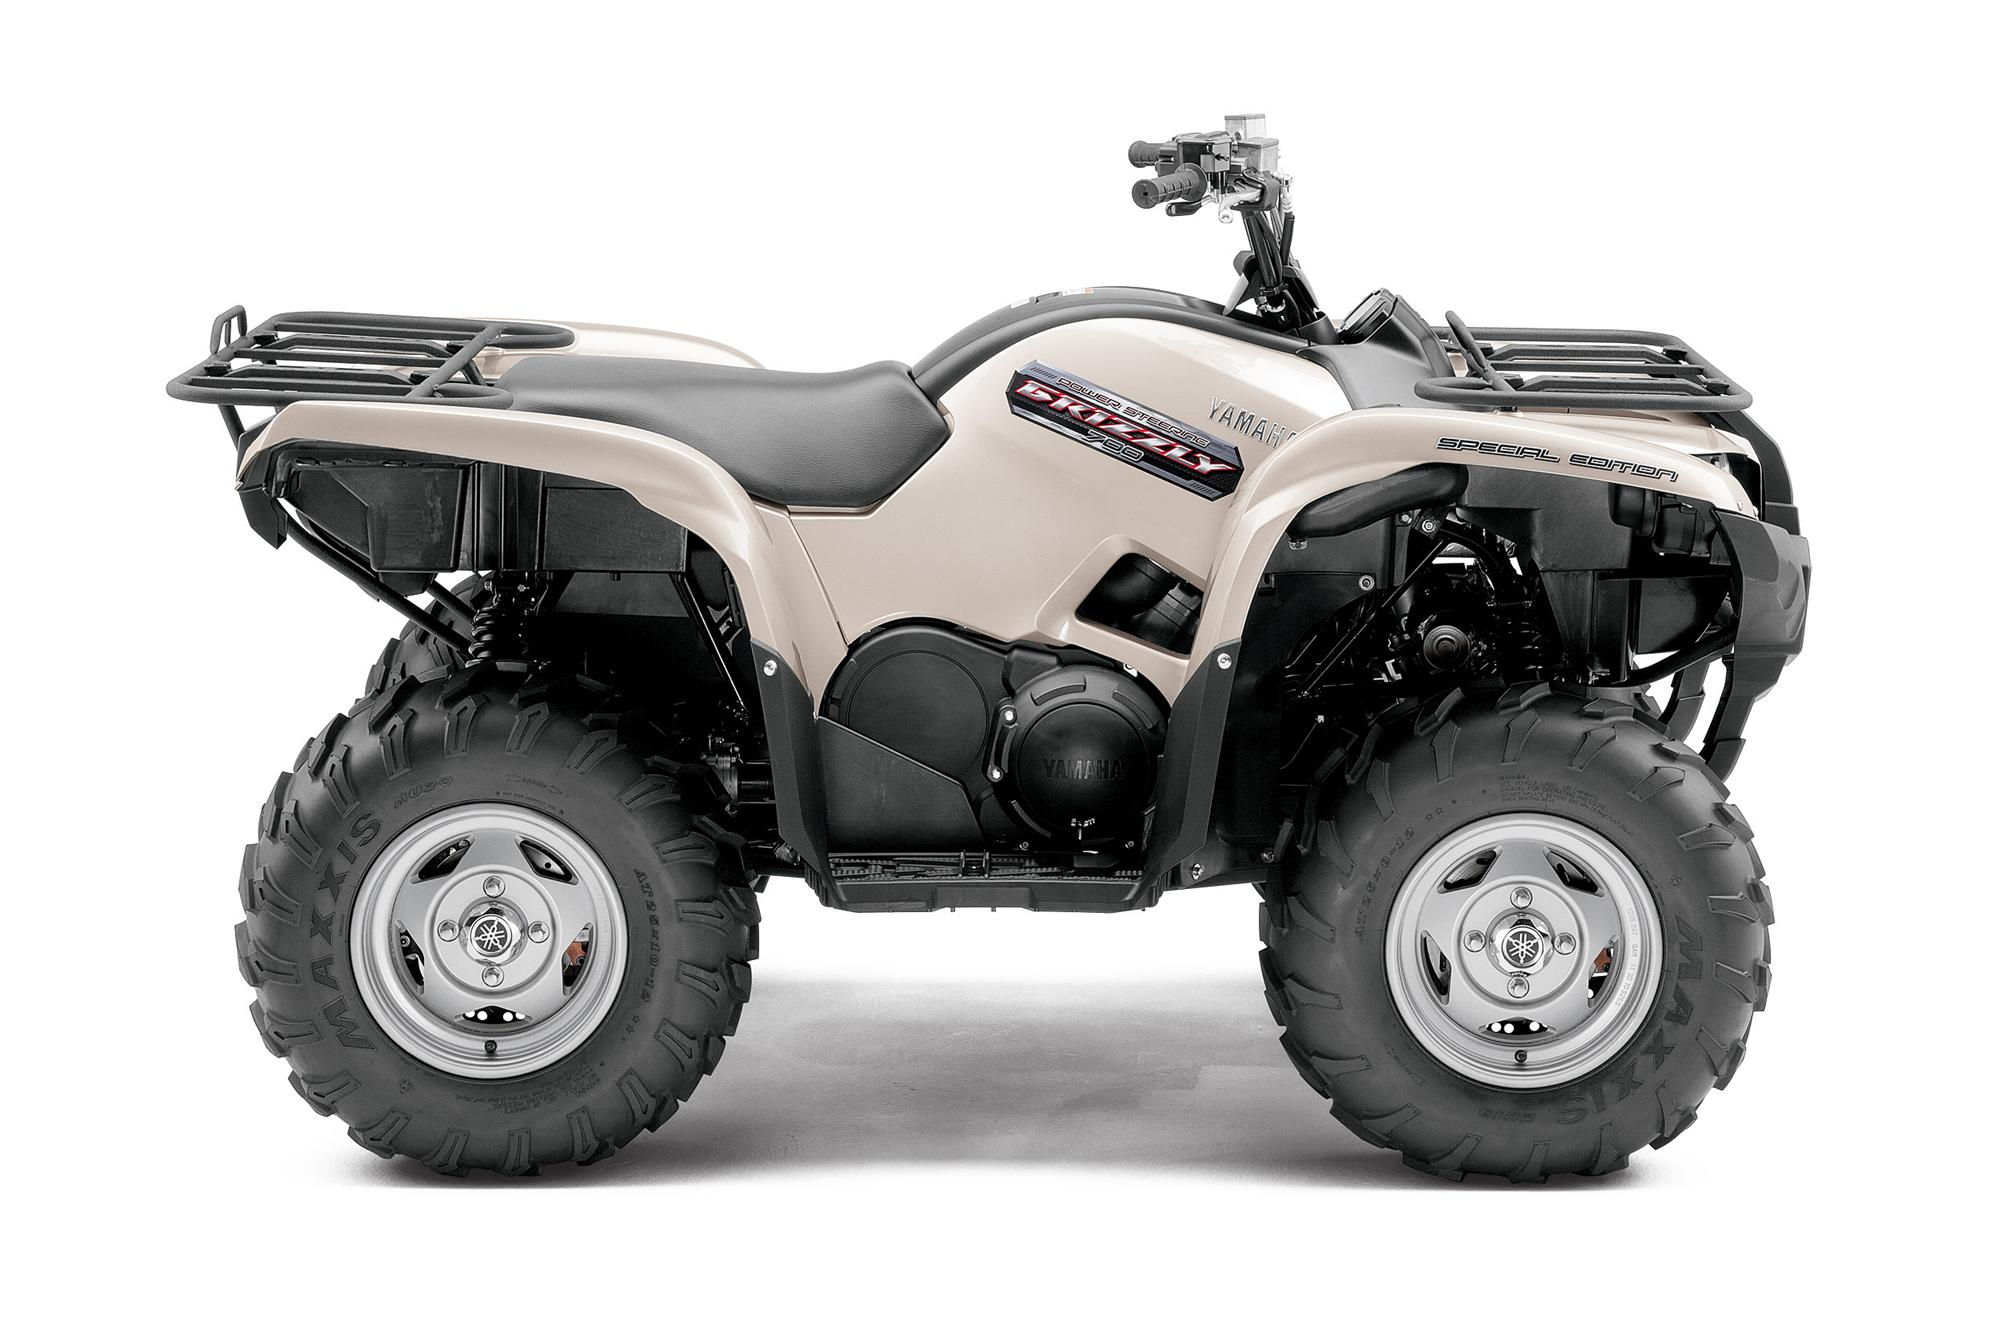 Yamaha Grizzly 4x4 Wiring Diagram List Of Schematic Circuit Rhino 450 Free Picture 700 Fi Automatic Eps Special Edition Specs 2011 Rh Autoevolution Com